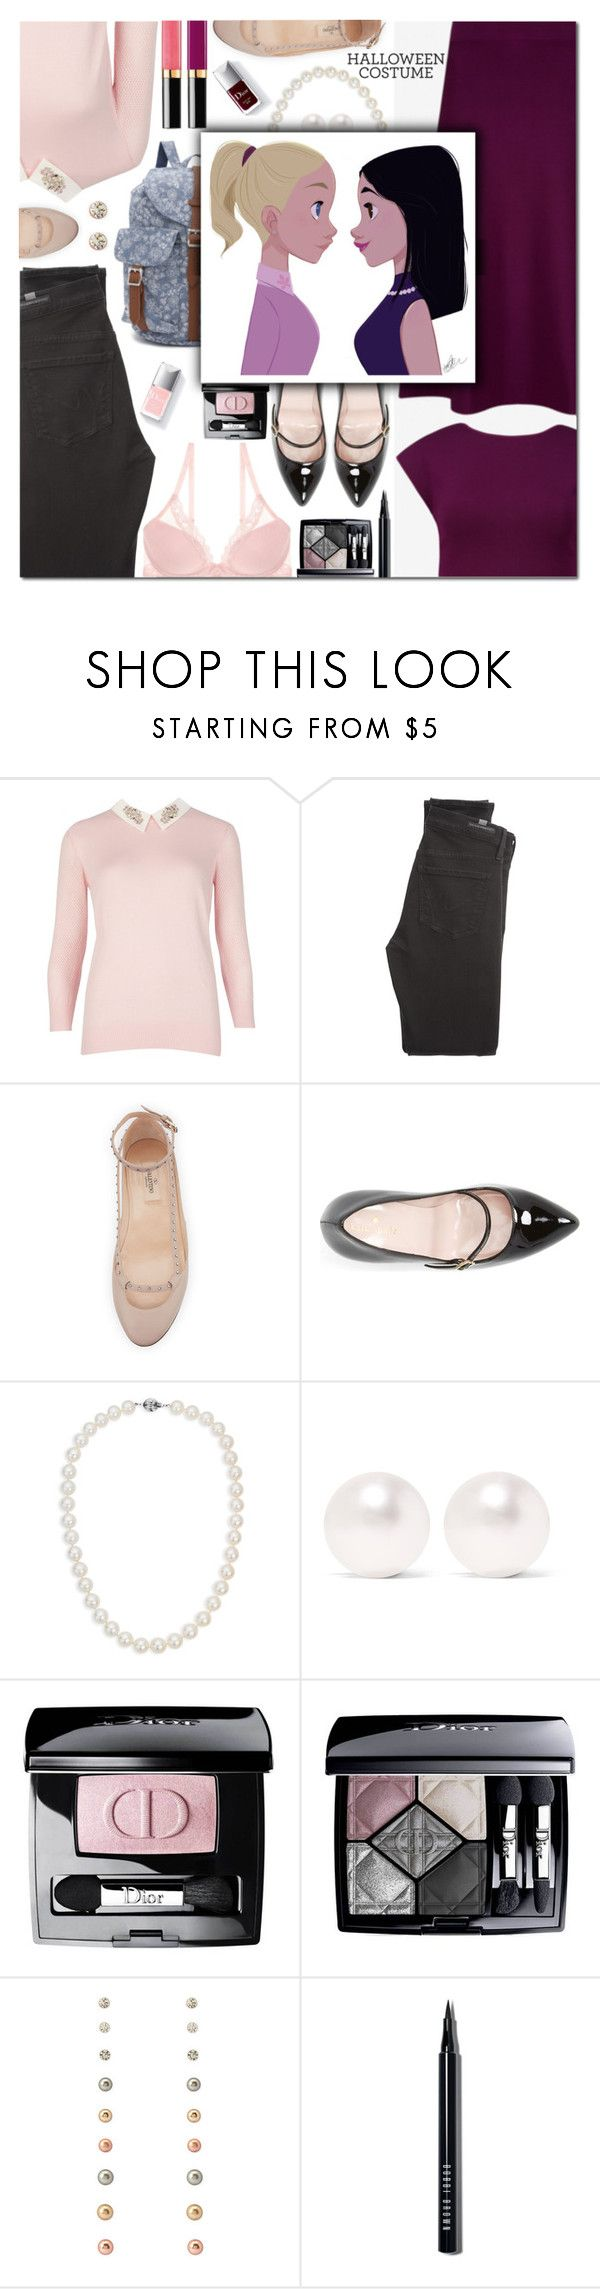 """Which Character Are You Dressing Up As This Halloween?"" by danielle-487 ❤ liked on Polyvore featuring Ted Baker, Citizens of Humanity, Blue Nile, Larkspur & Hawk, Christian Dior, Bobbi Brown Cosmetics, Couture Colour and halloweencostumes"